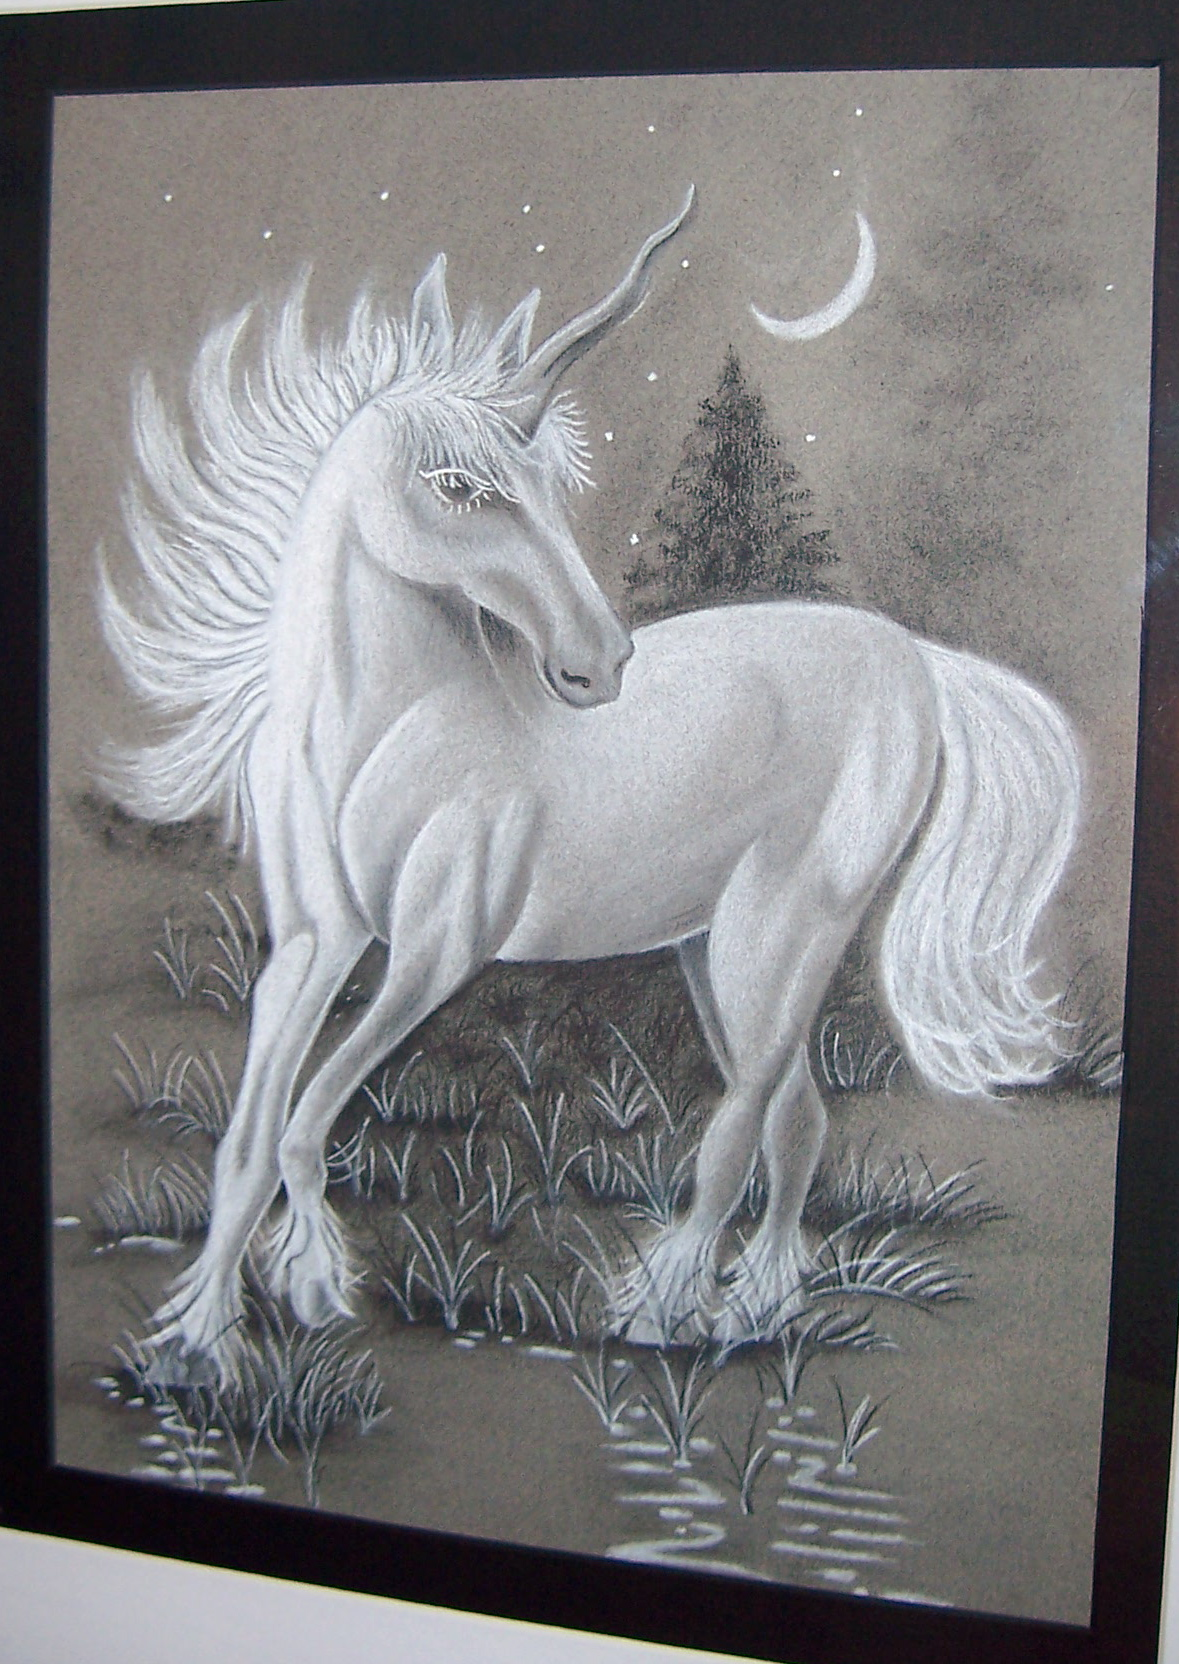 We had to bring a photo from home to draw. My niece, Kira, told me to draw the unicorn picture my mom had hanging in her bathroom. She loves horses so I wanted to draw something she would be proud to hang up in her room. This is my favorite piece of all that I have done so far. I had it professionally matted and framed and she hung it up herself above her bed.